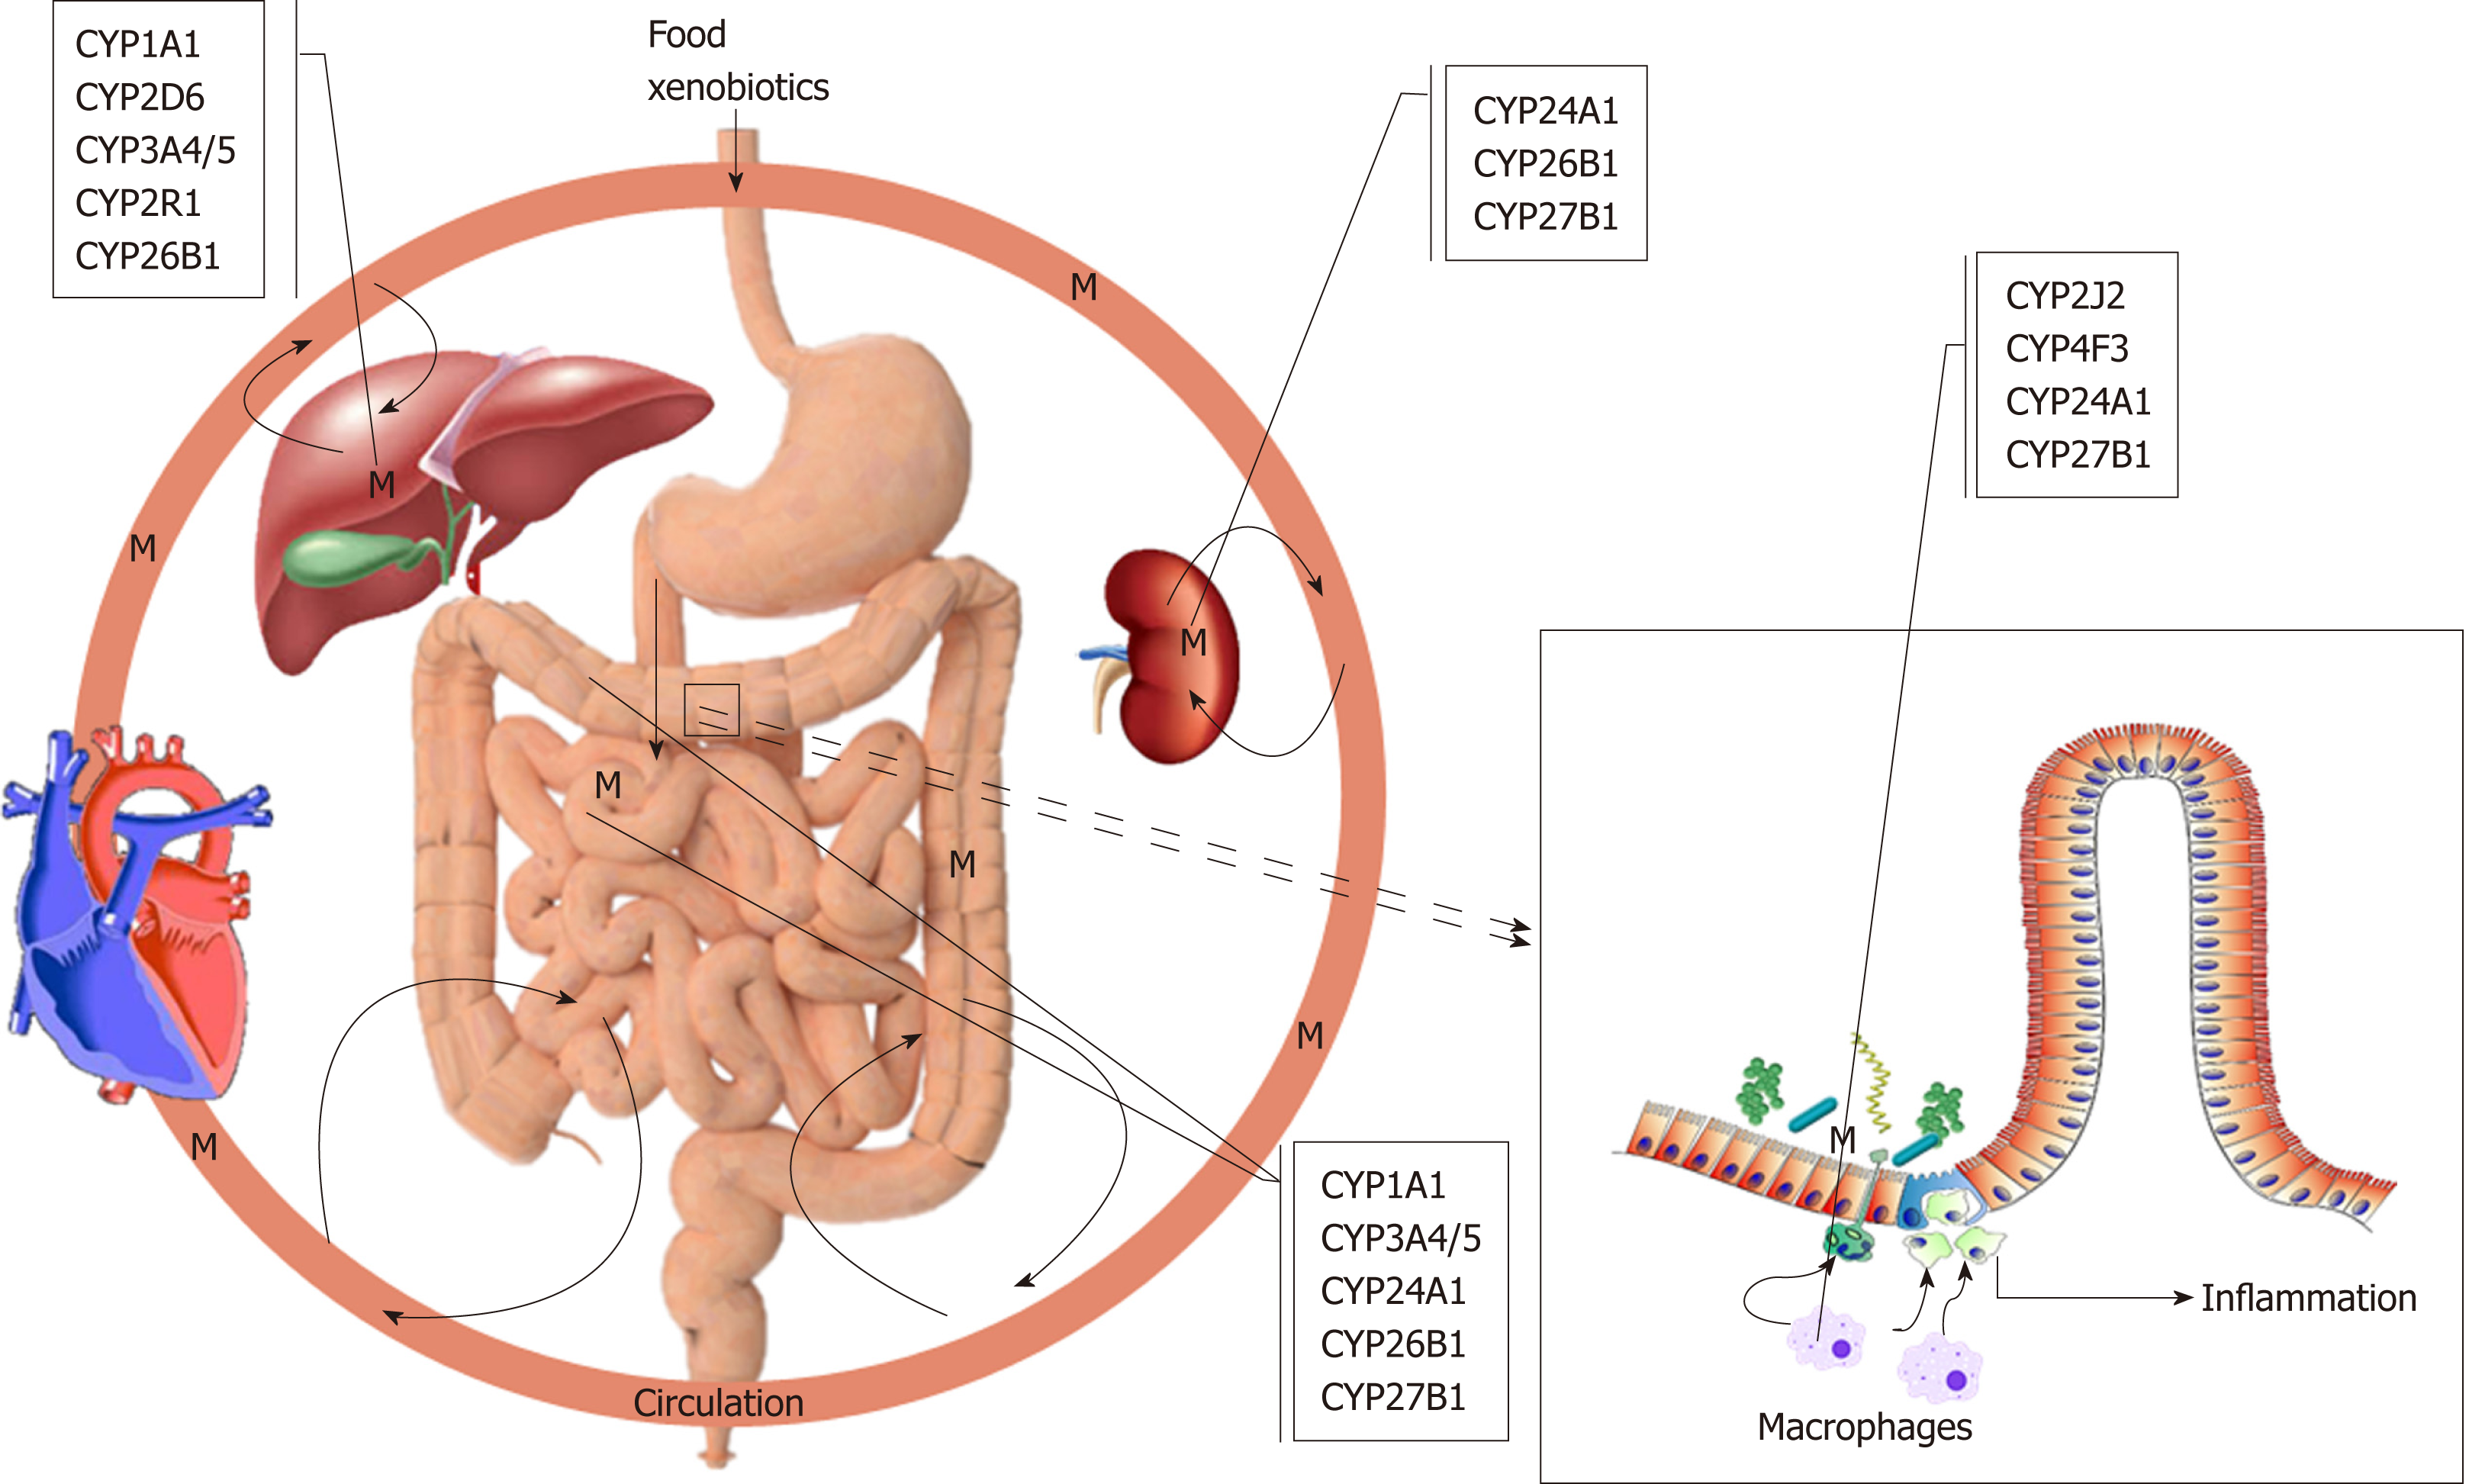 figure 1 overview the role of cytochromes p450s in ulcerative colitis  m:  metabolites